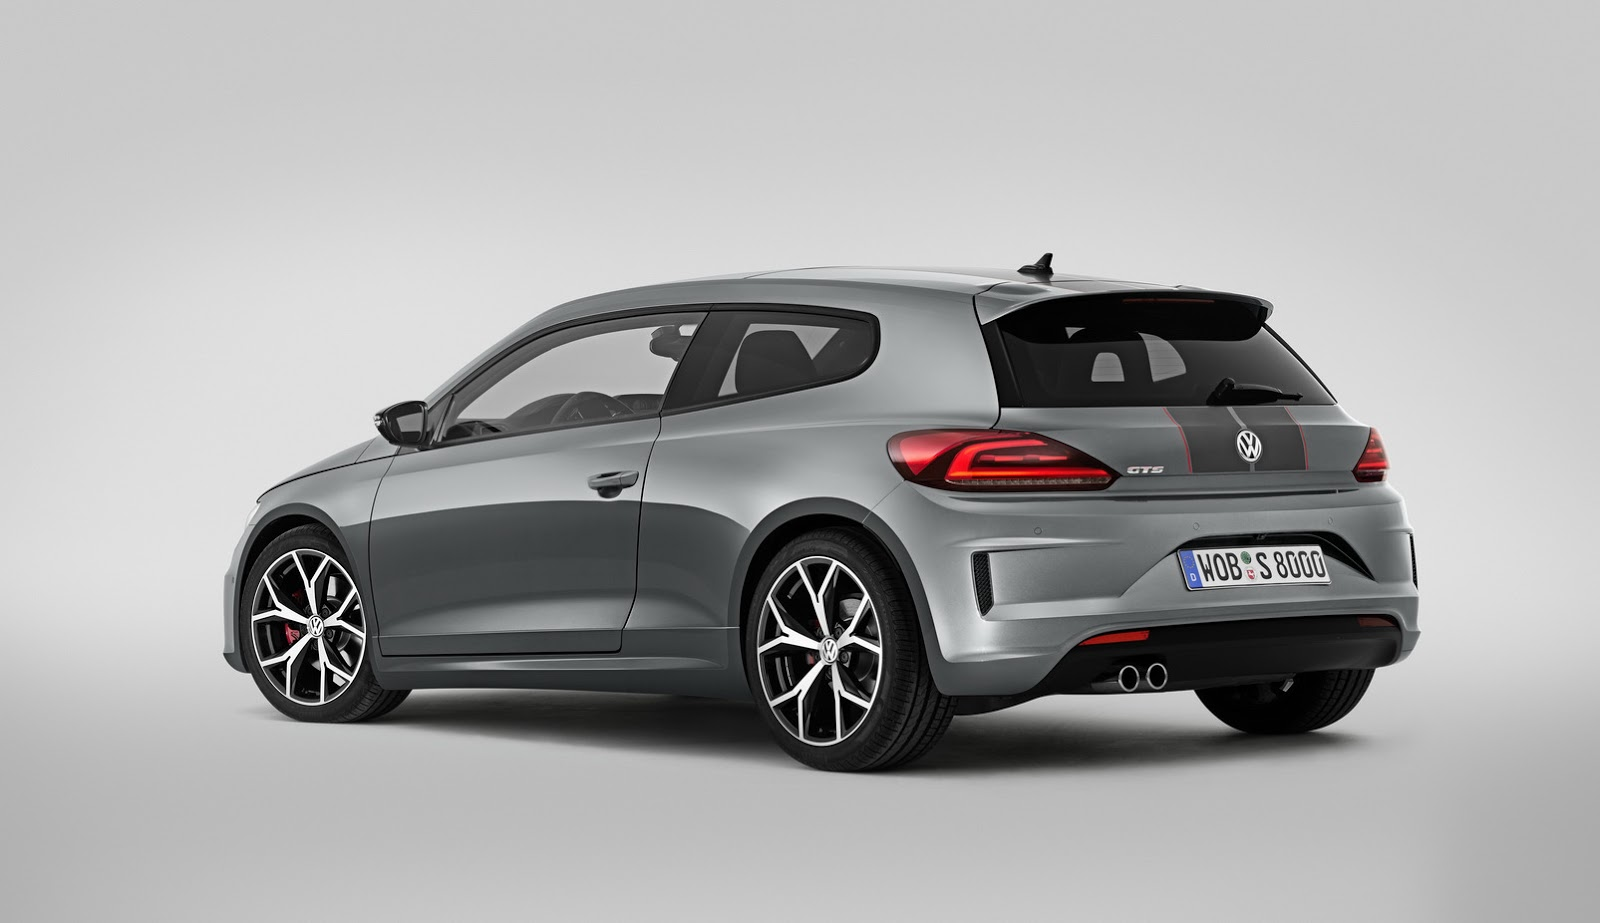 New 2015 Vw Scirocco Gts To Debut In Shanghai Carscoops